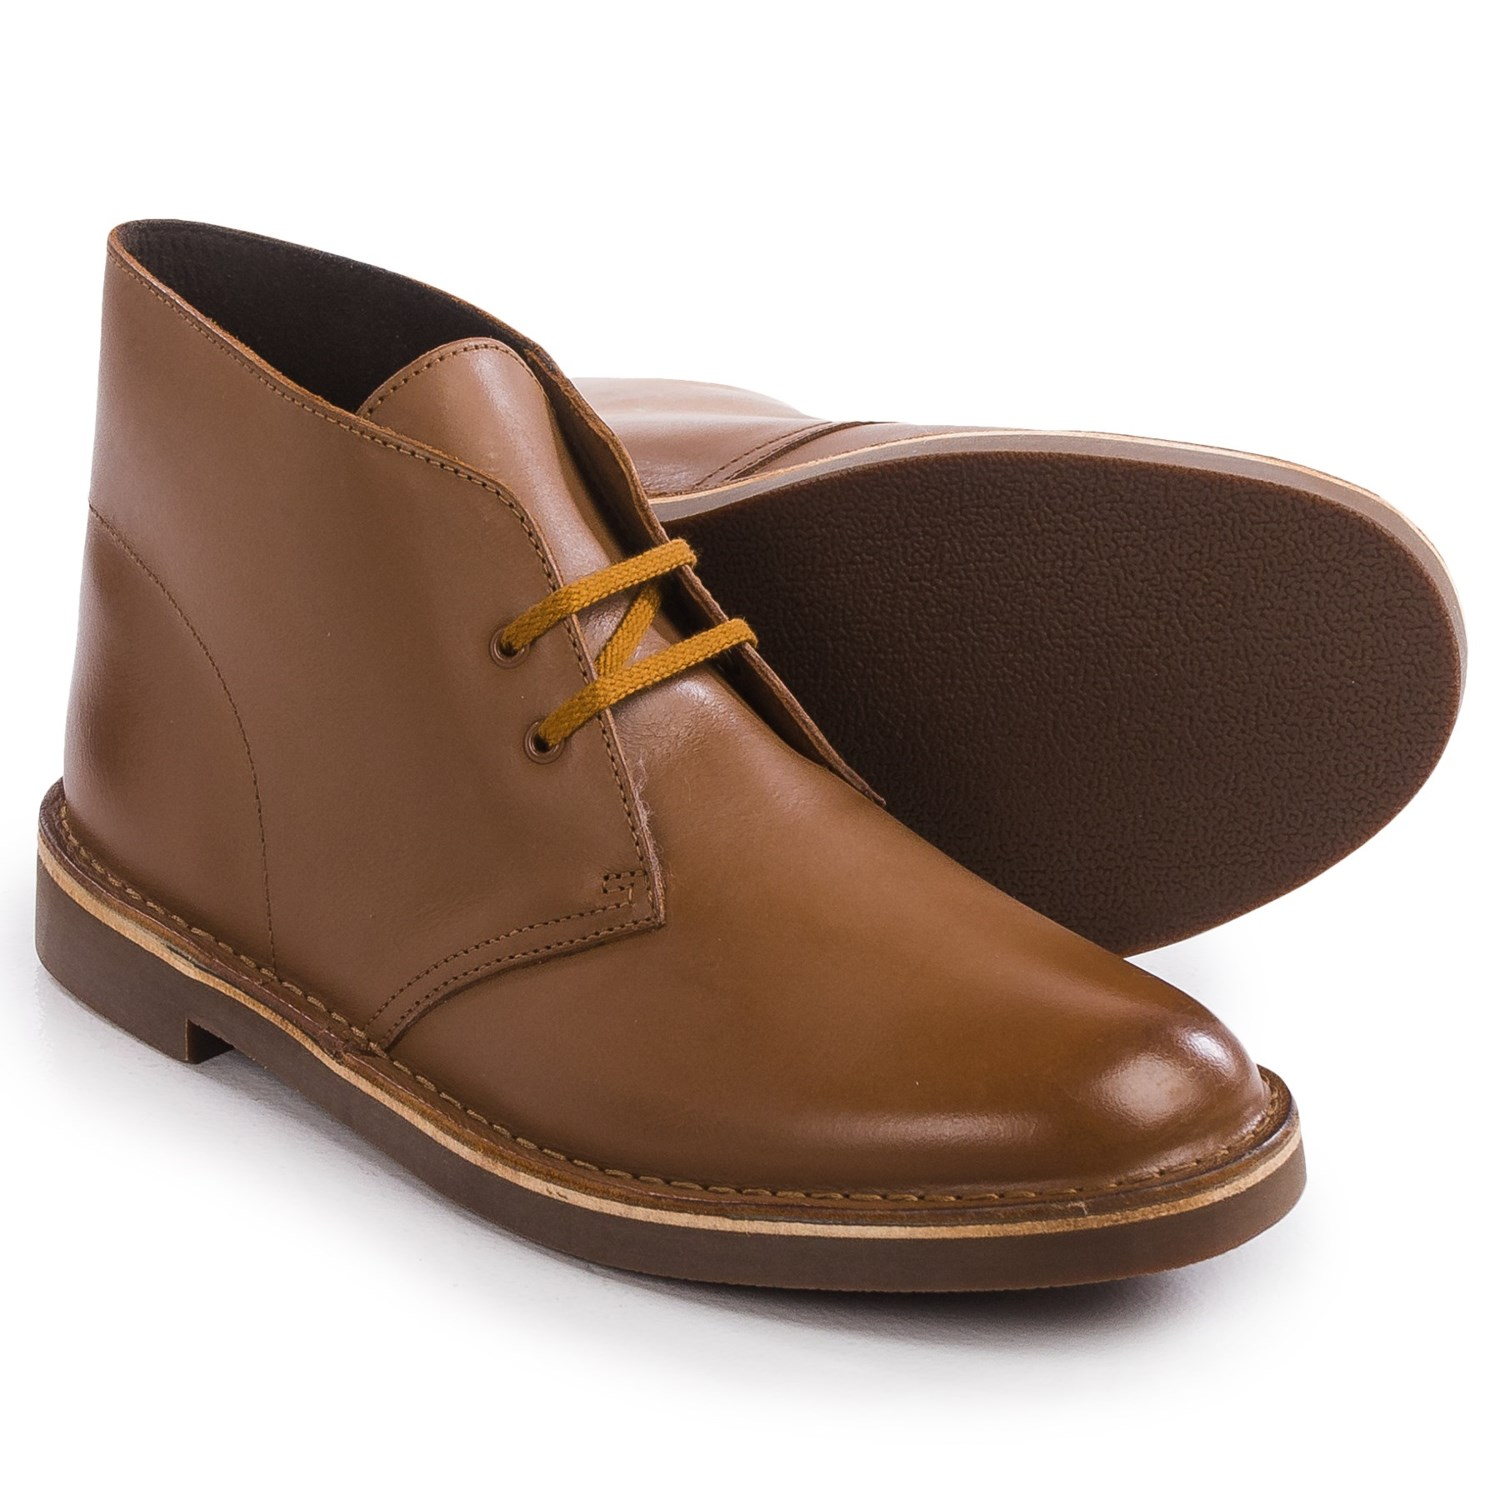 Clarks Bushacre 2 Chukka Boots (For Men) - Save 58%